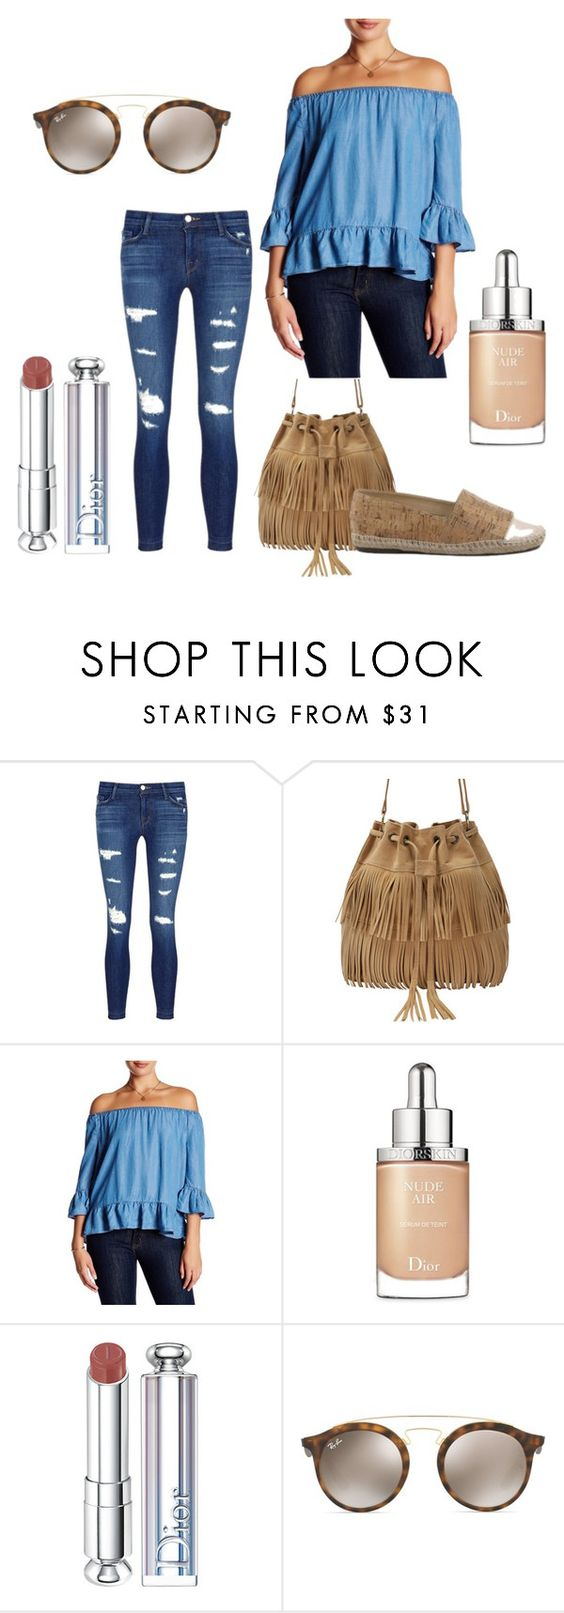 """""""Ita_01"""" by la-ballona ❤ liked on Polyvore featuring J Brand, Want & Need, Christian Dior and Ray-Ban"""